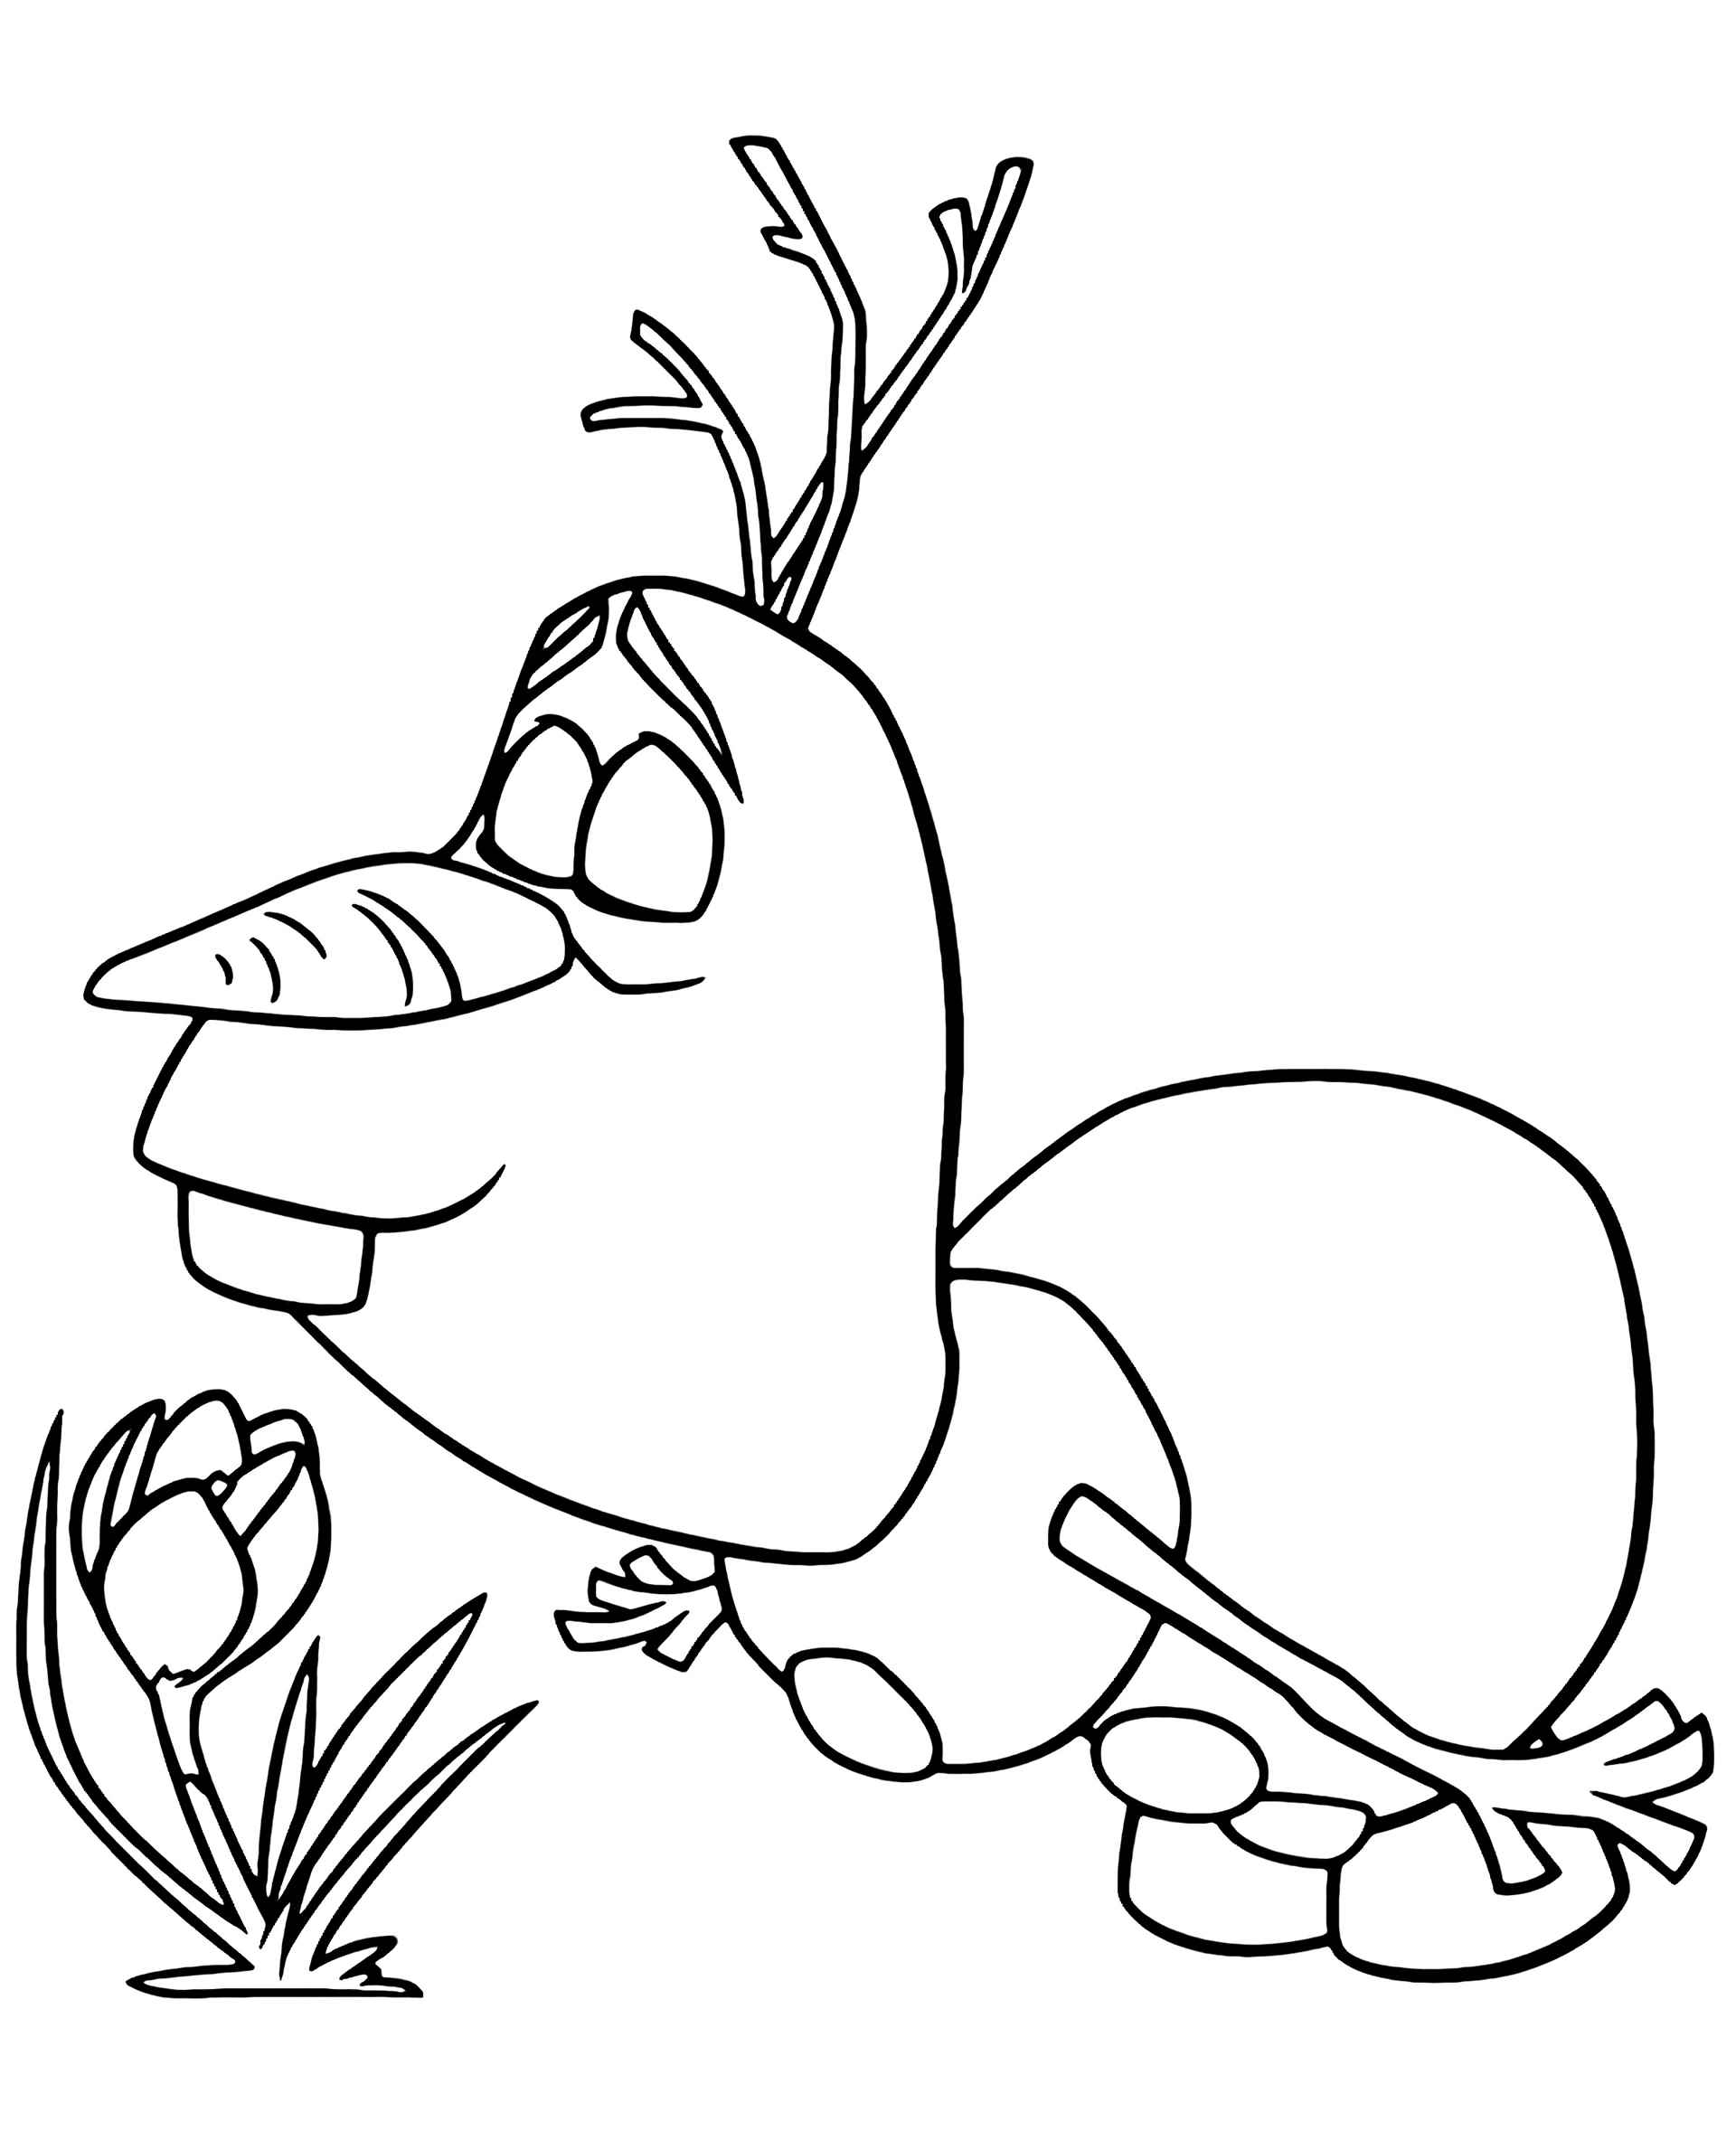 Frozen Olaf And A Flower Coloring Page